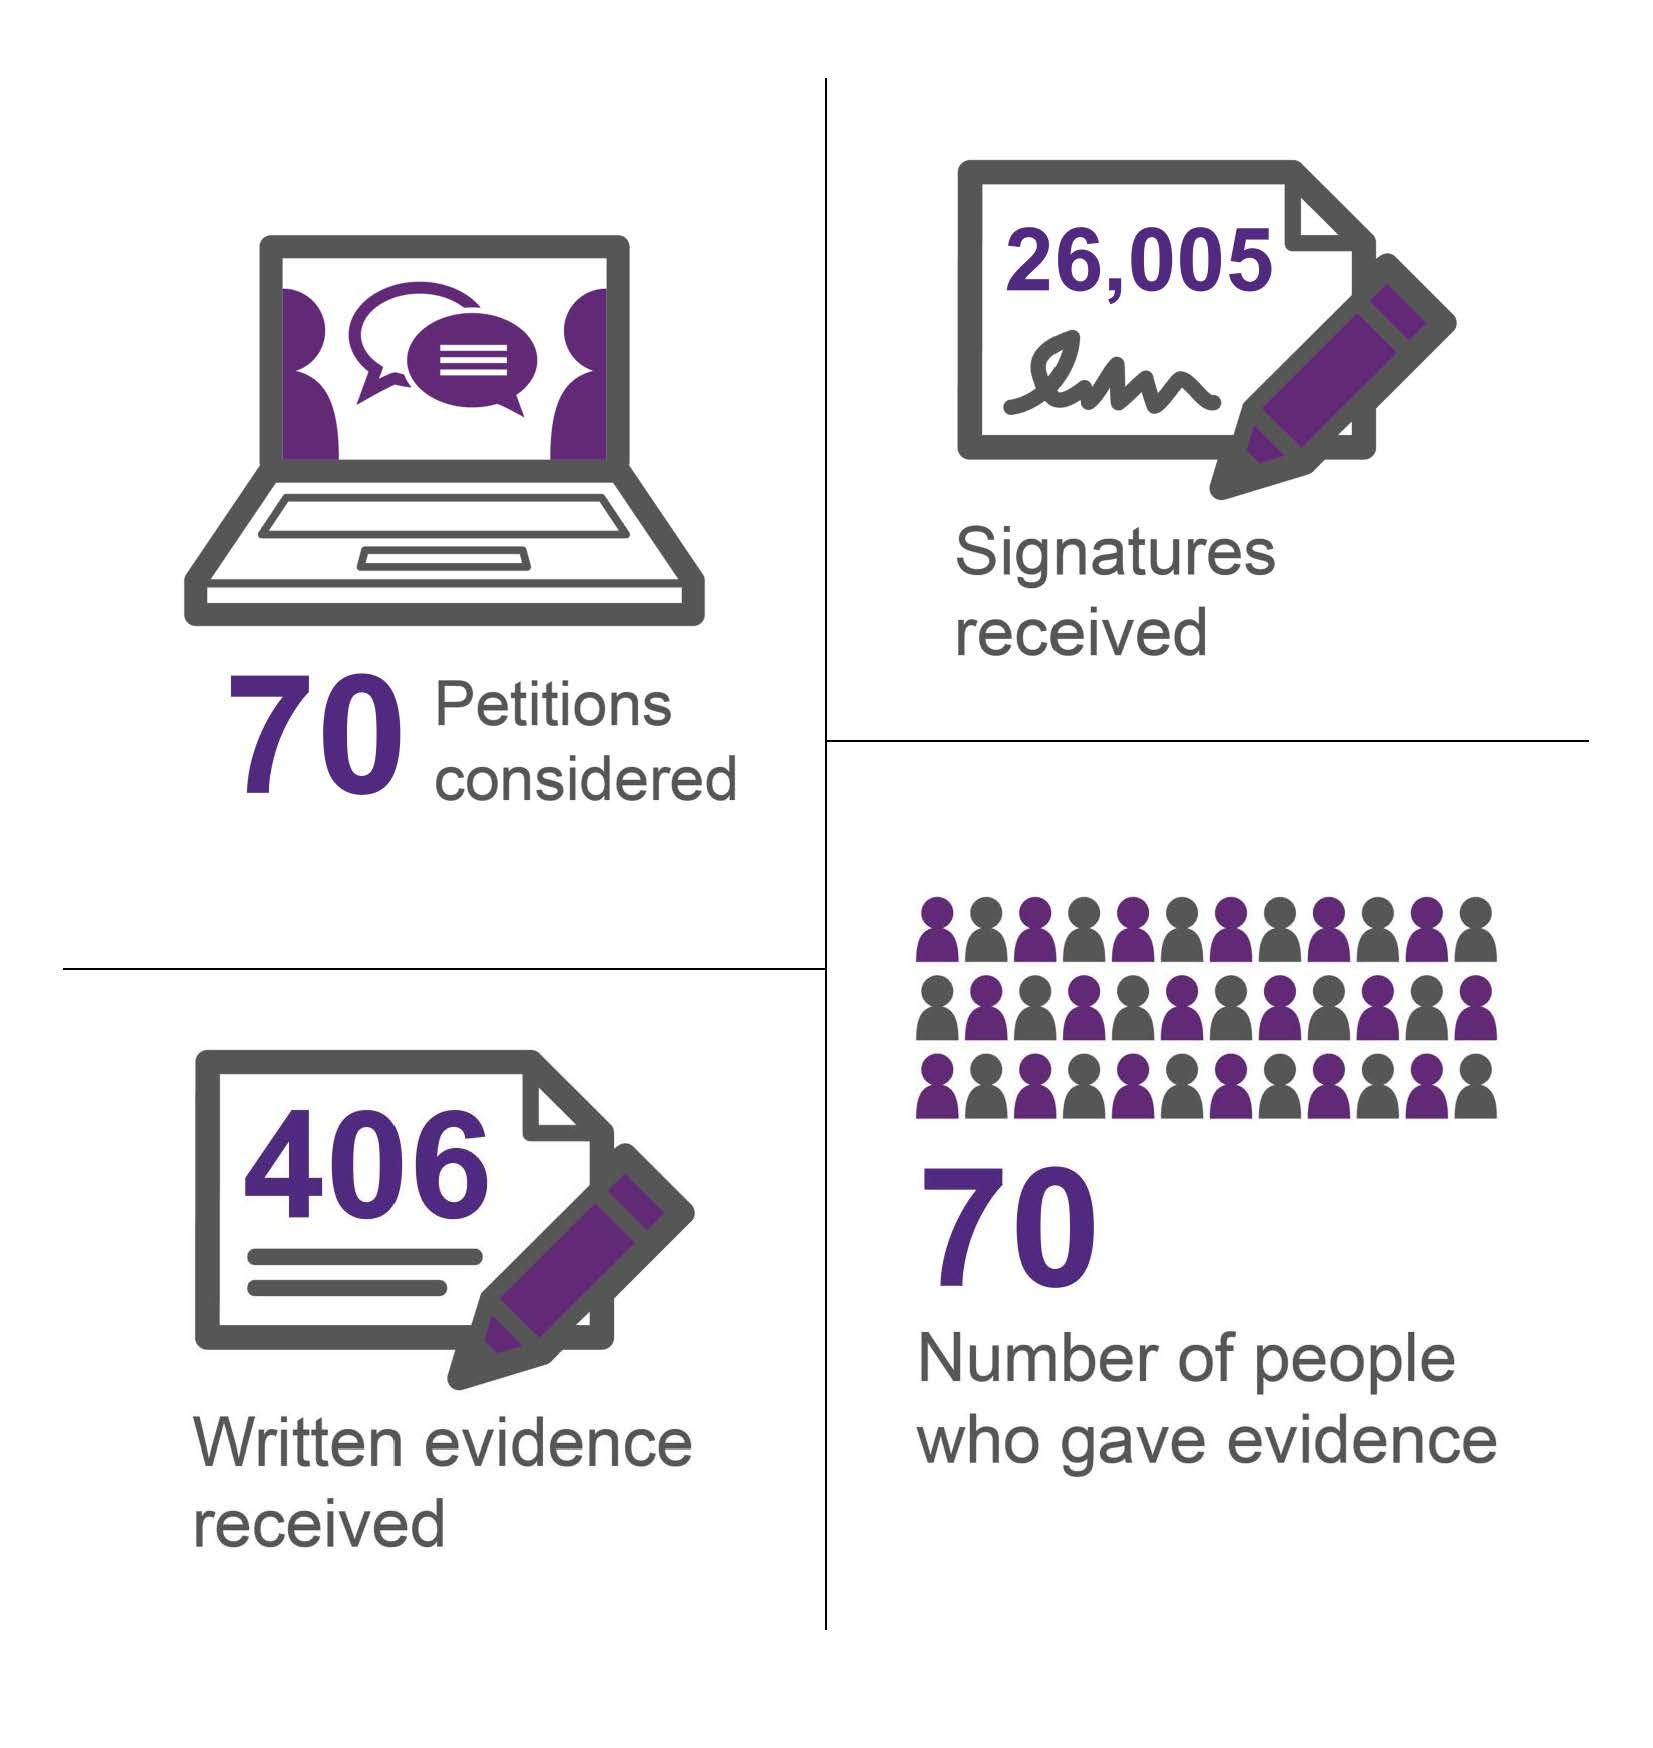 Picture showing the number of petitions lodged, the number of signatures received, the number of written submissions and the number of people giving evidence.